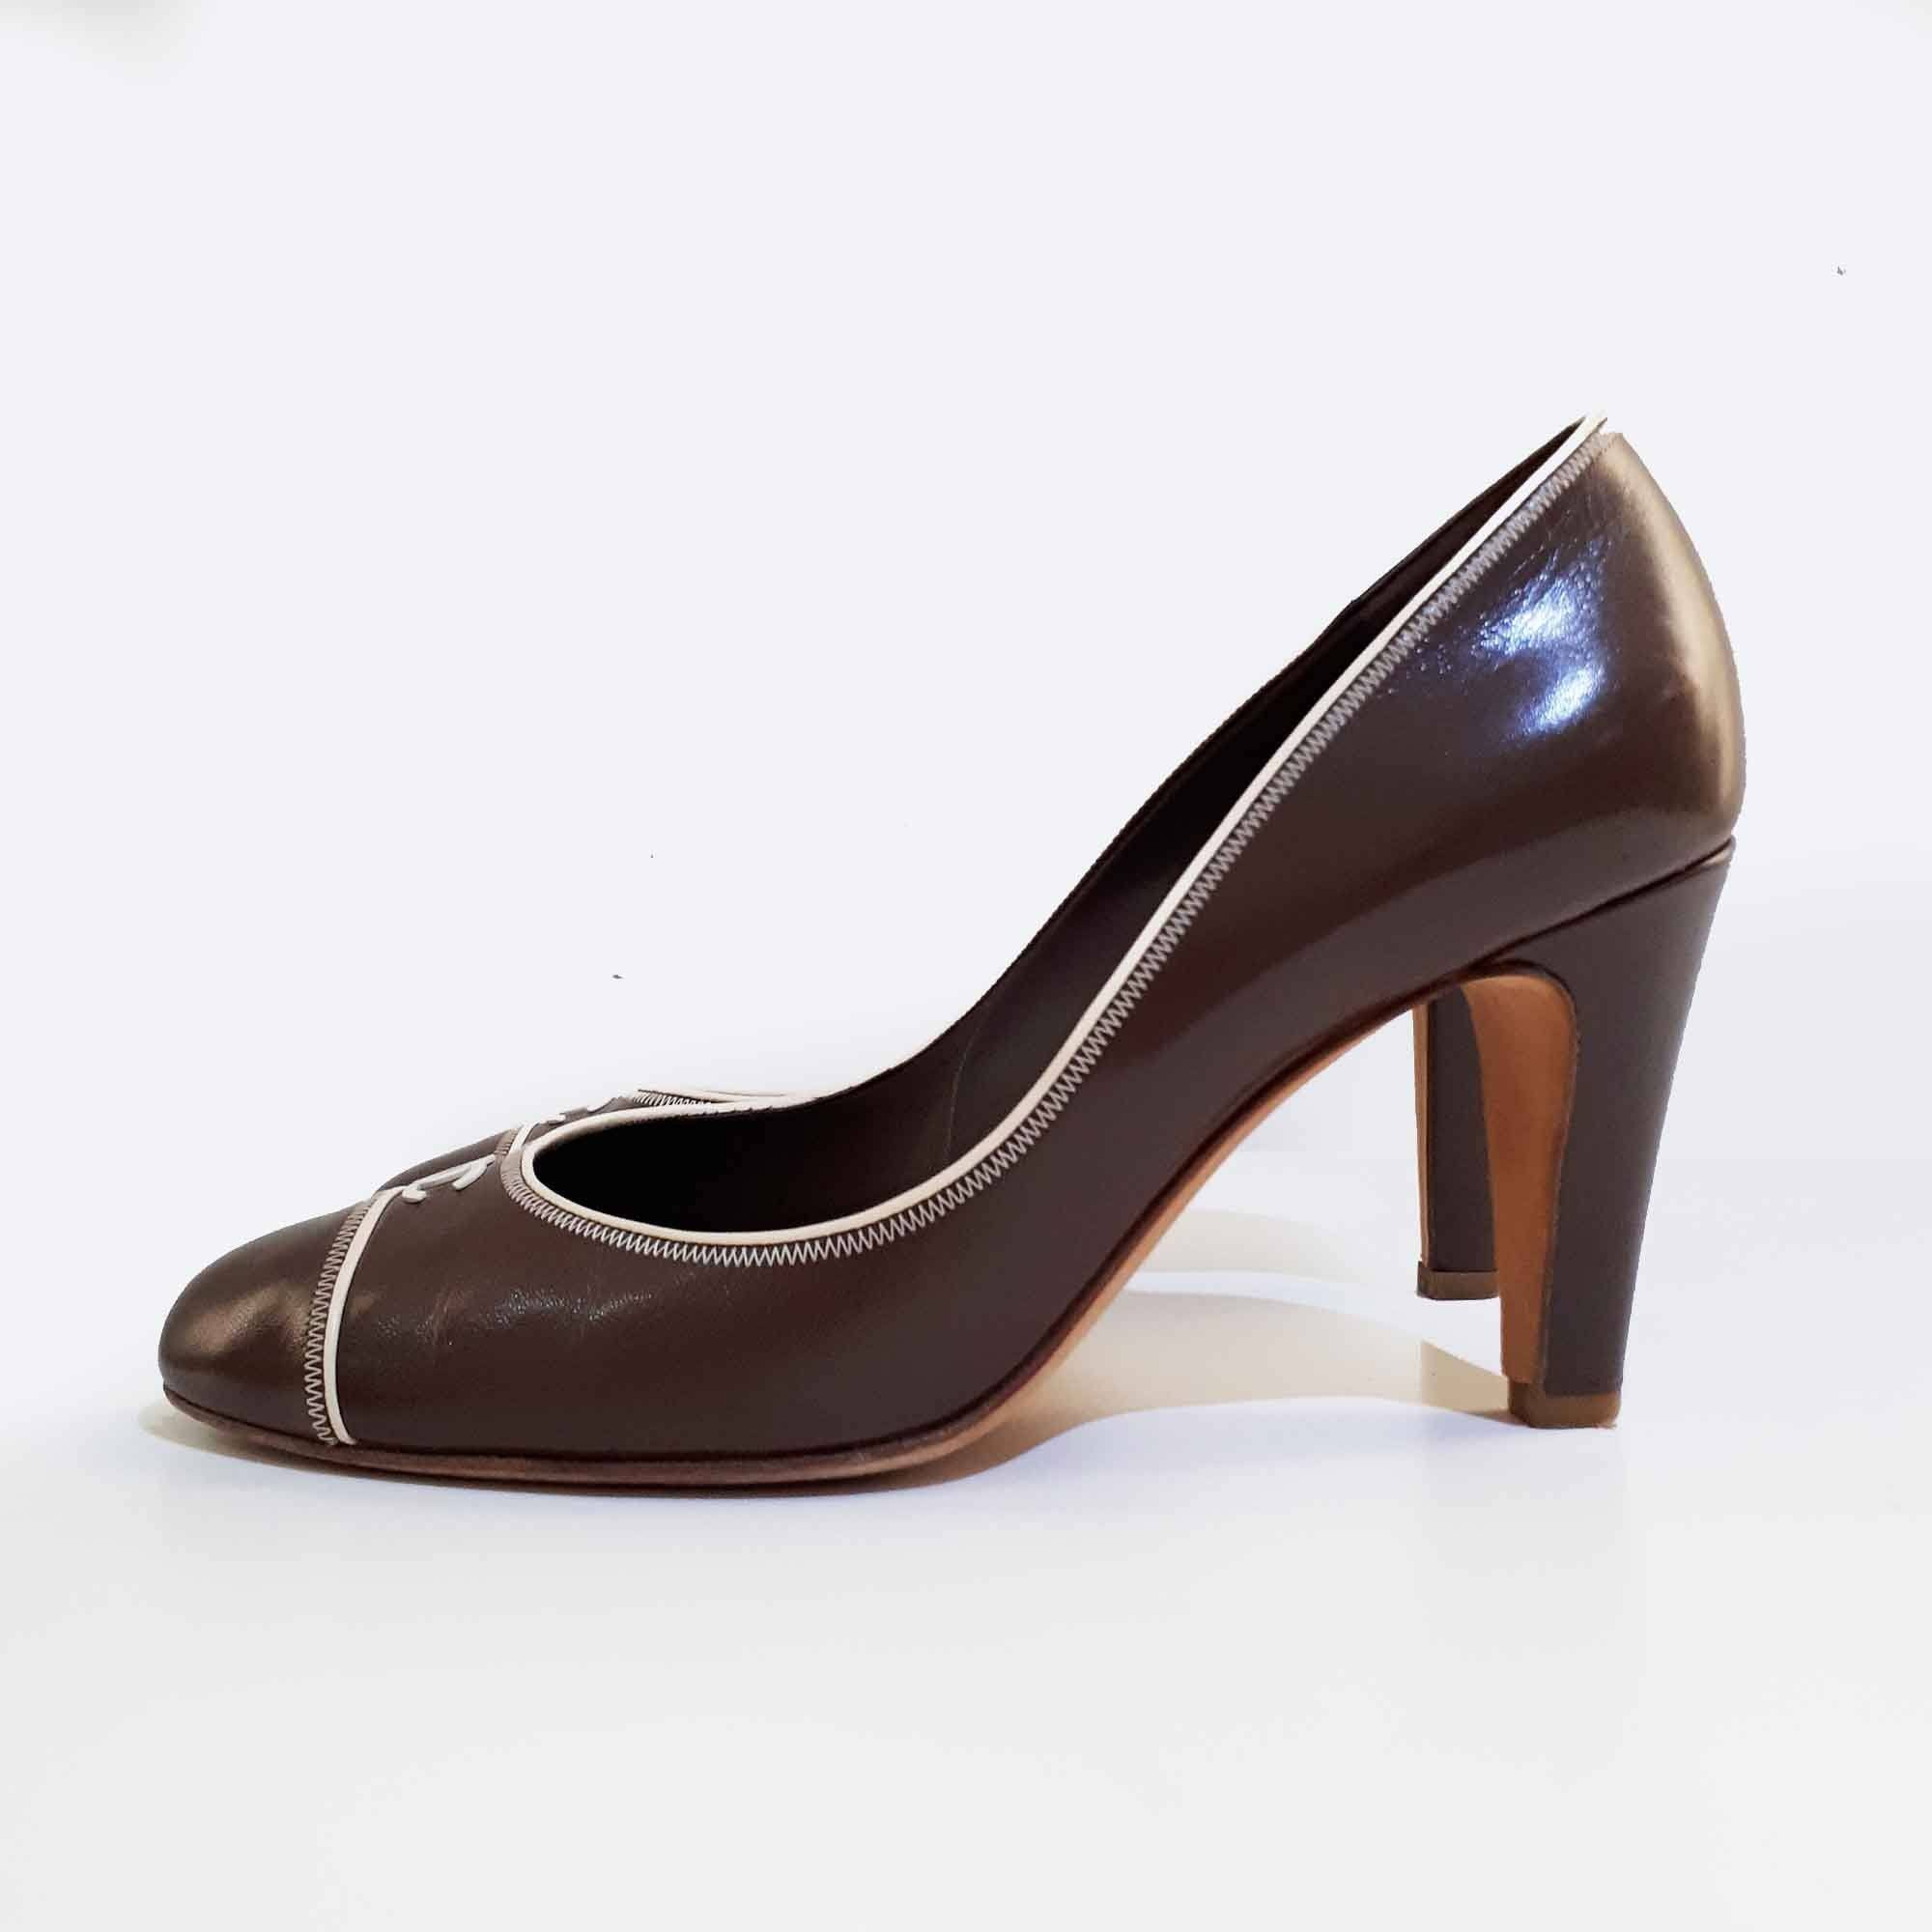 Chanel Brown Leather Pumps